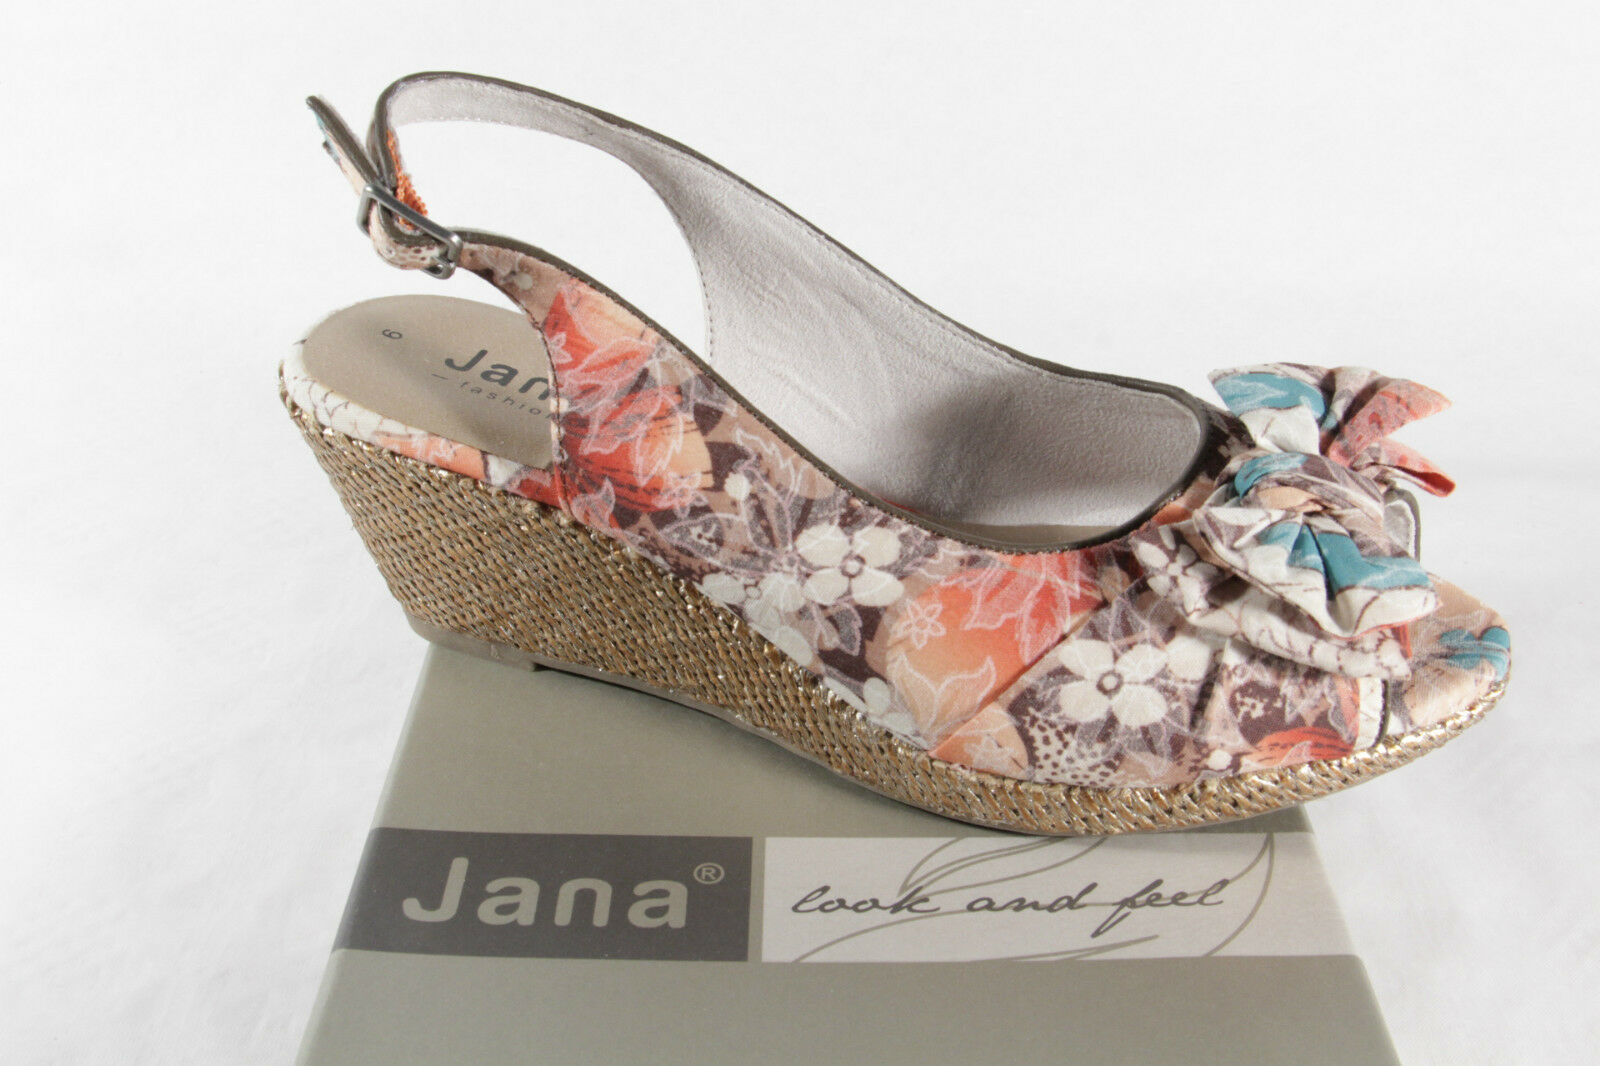 Jana Women's Sandals Multicolour, Soft Inner Sole , Rubber Sole New